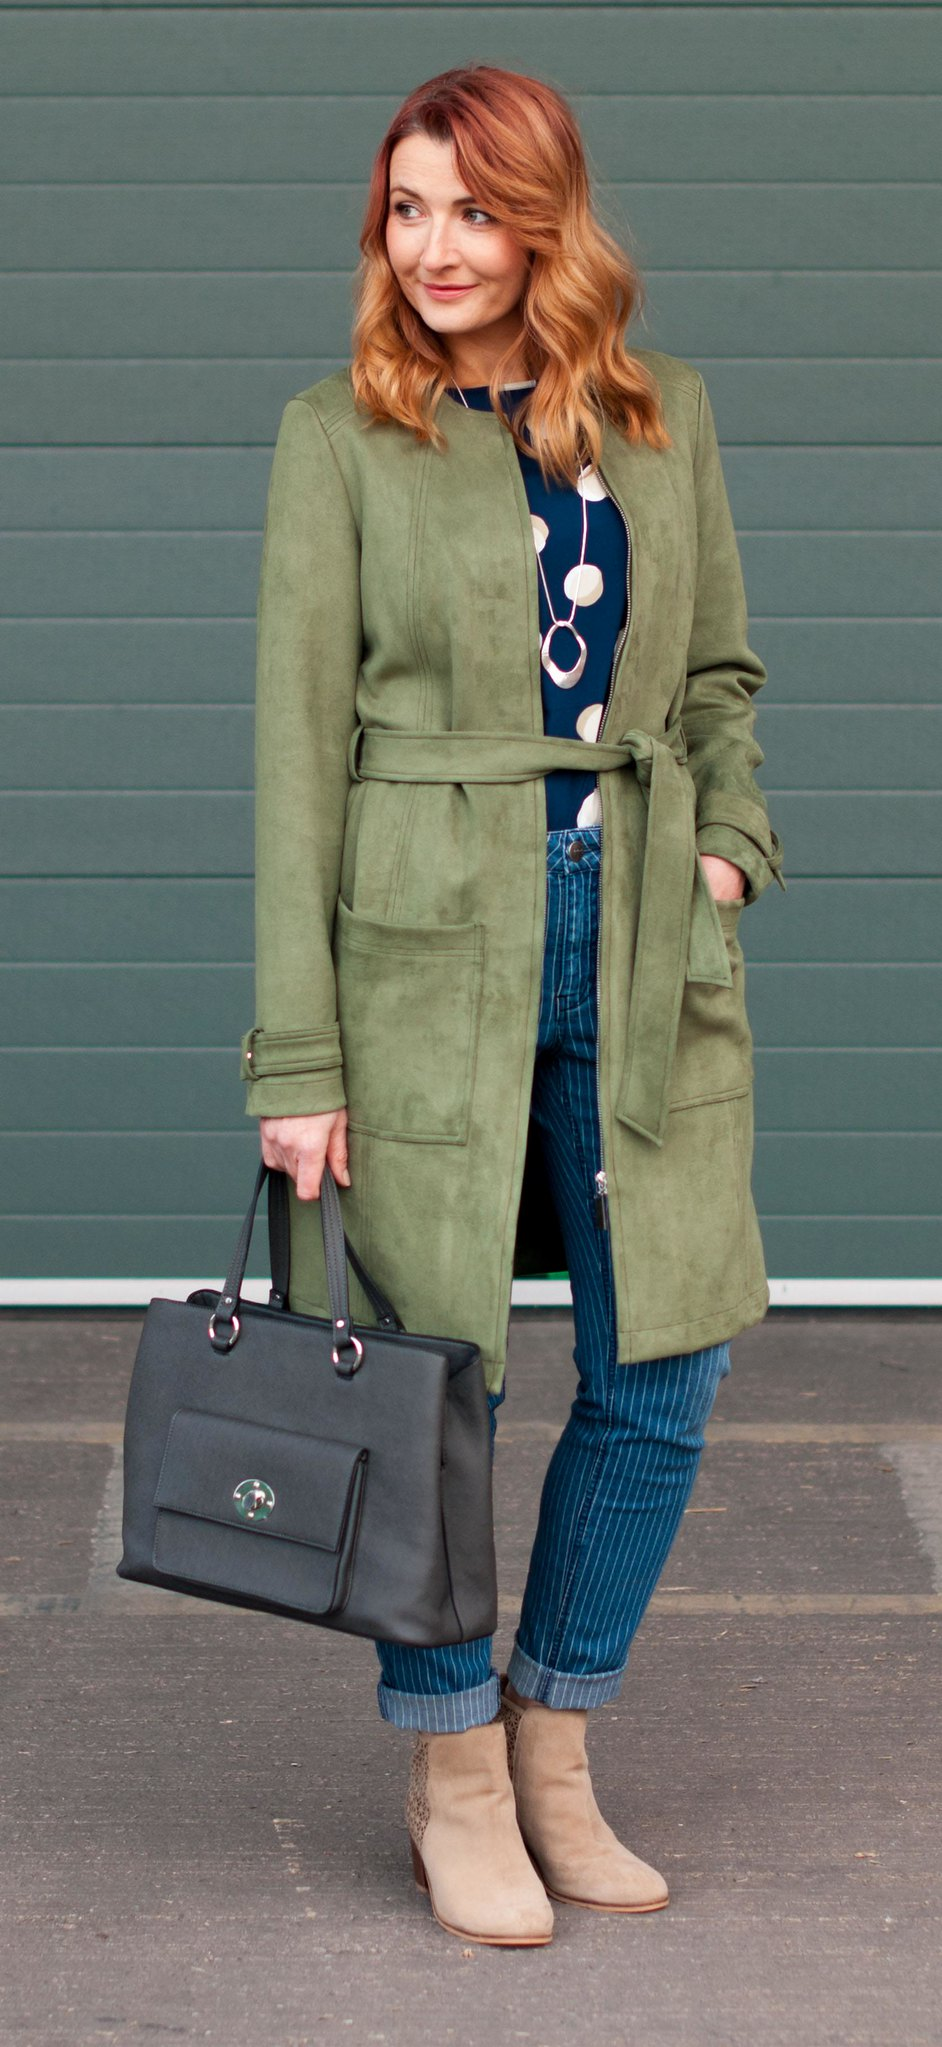 Winter to spring transitional outfit - khaki green suede jacket, spotty top, pinstripe boyfriend jeans, stone ankle boots | Not Dressed As Lamb, over 40 style